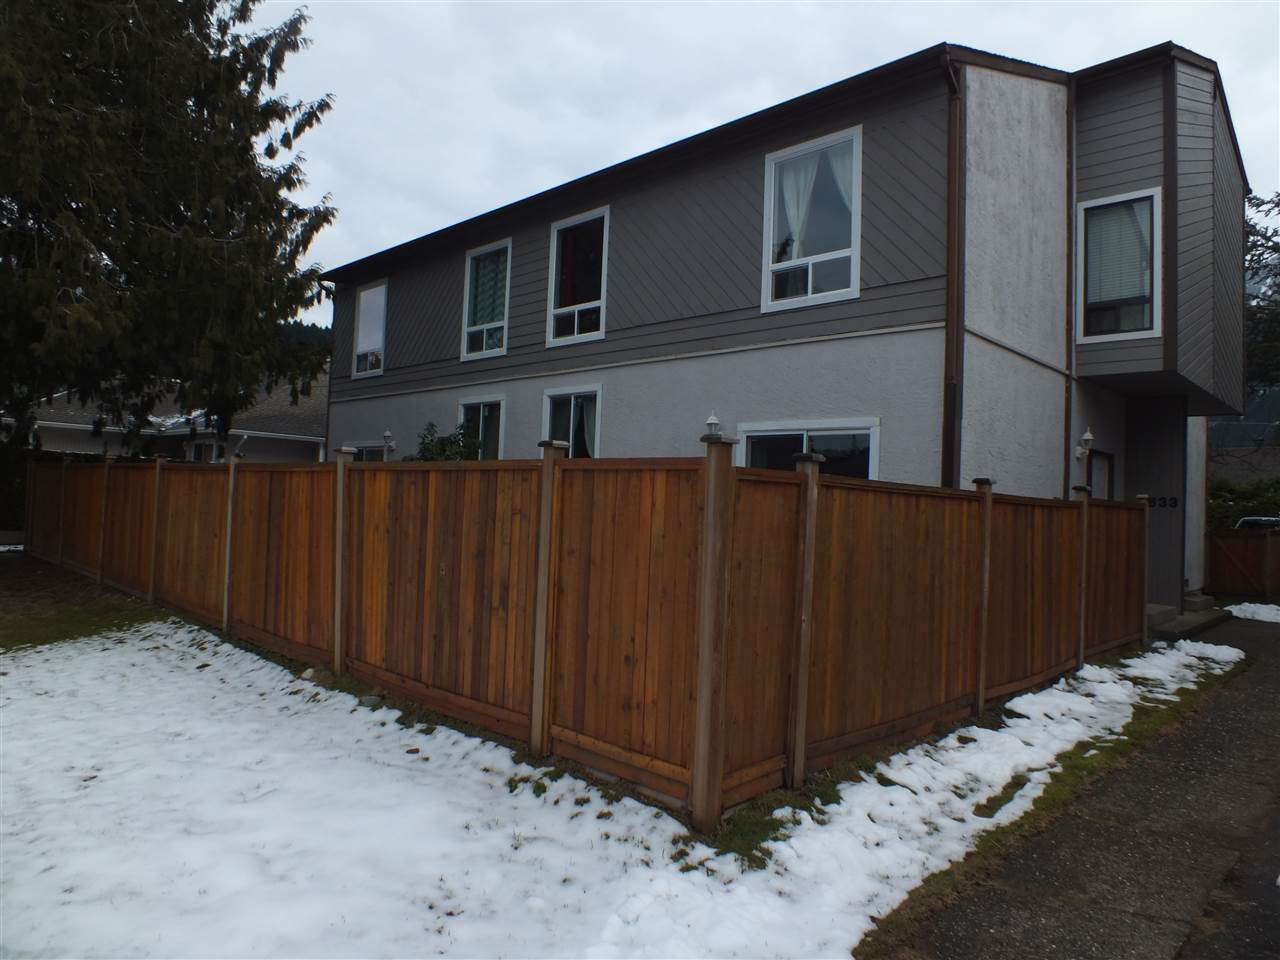 Don't miss out on this 3 bdrm, 1 1/2 baths townhome.  This well cared for corner unit is considered on the sunny side of town and a short walk to downtown, shopping, schools and recreational centre.